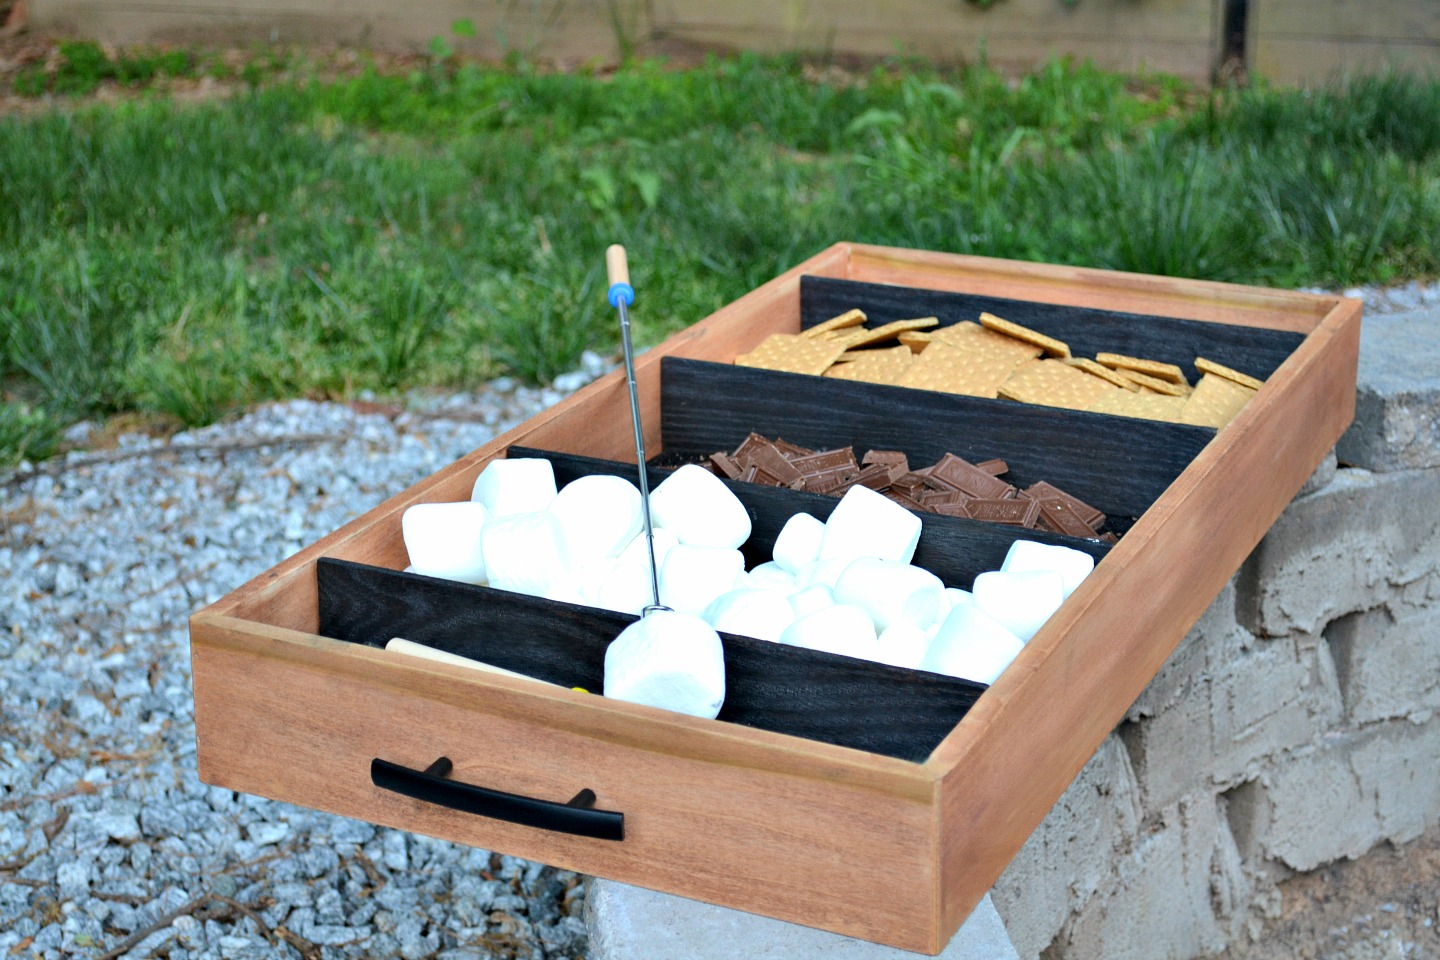 diy shou sugi ban charred wood tray for s'mores